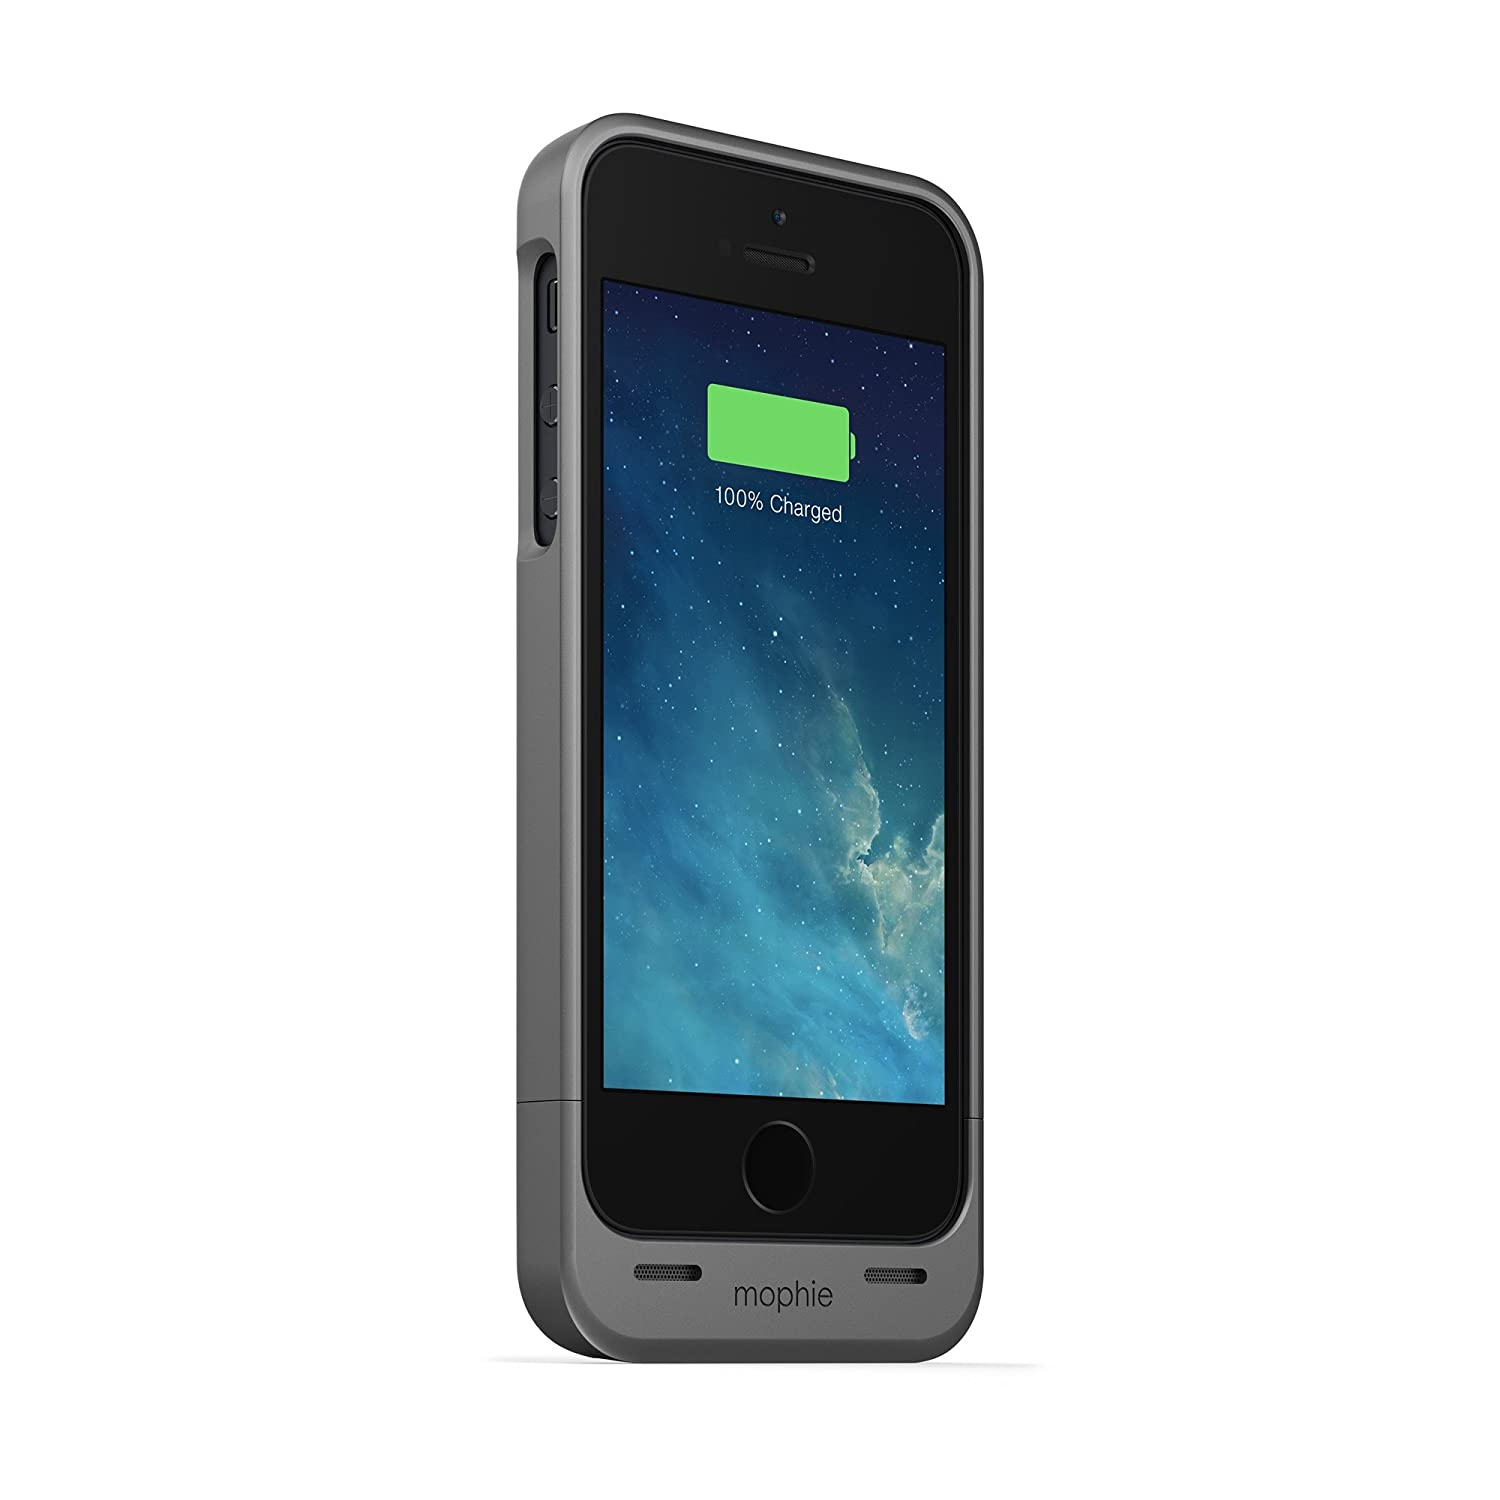 Mophie Juice Pack - Carcasa con Cargador para Apple iPhone 5 (1500 mAh), Gris